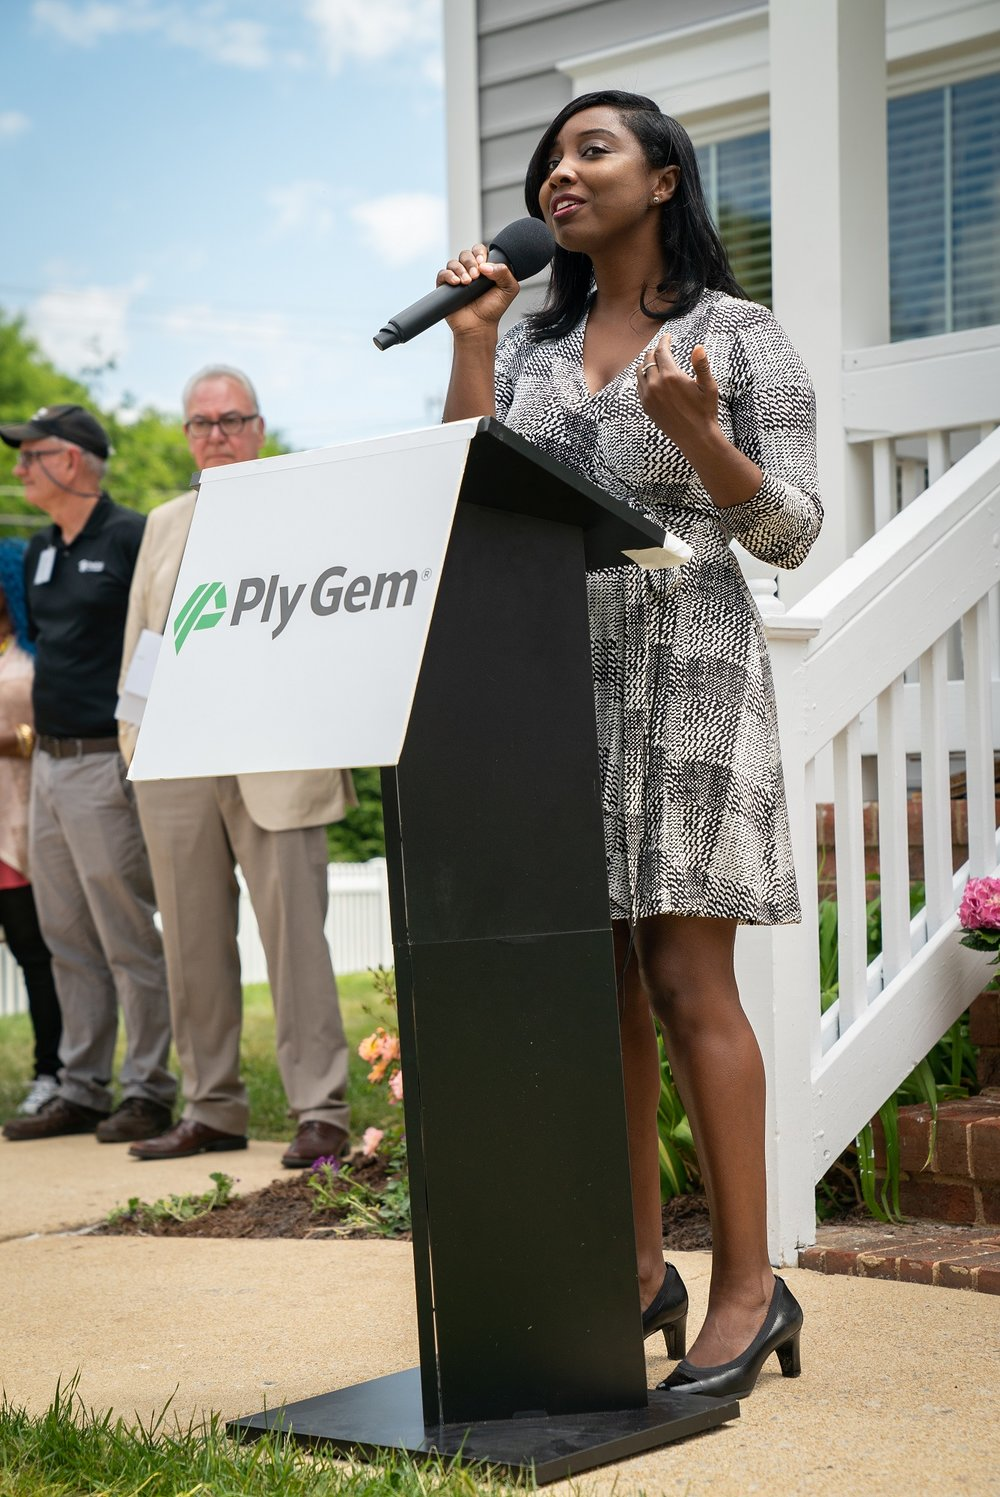 Wake County Board of Commissioners Chair, Jessica Holmes, addresses local media, community leaders, and build volunteers during the Ply Gem Home for Good project completion ceremony in Raleigh, on Tuesday, May 8th. Since 2016, Ply Gem, an exterior building products manufacturer based in cary, has helped build or remodel 450 homes nationwide.